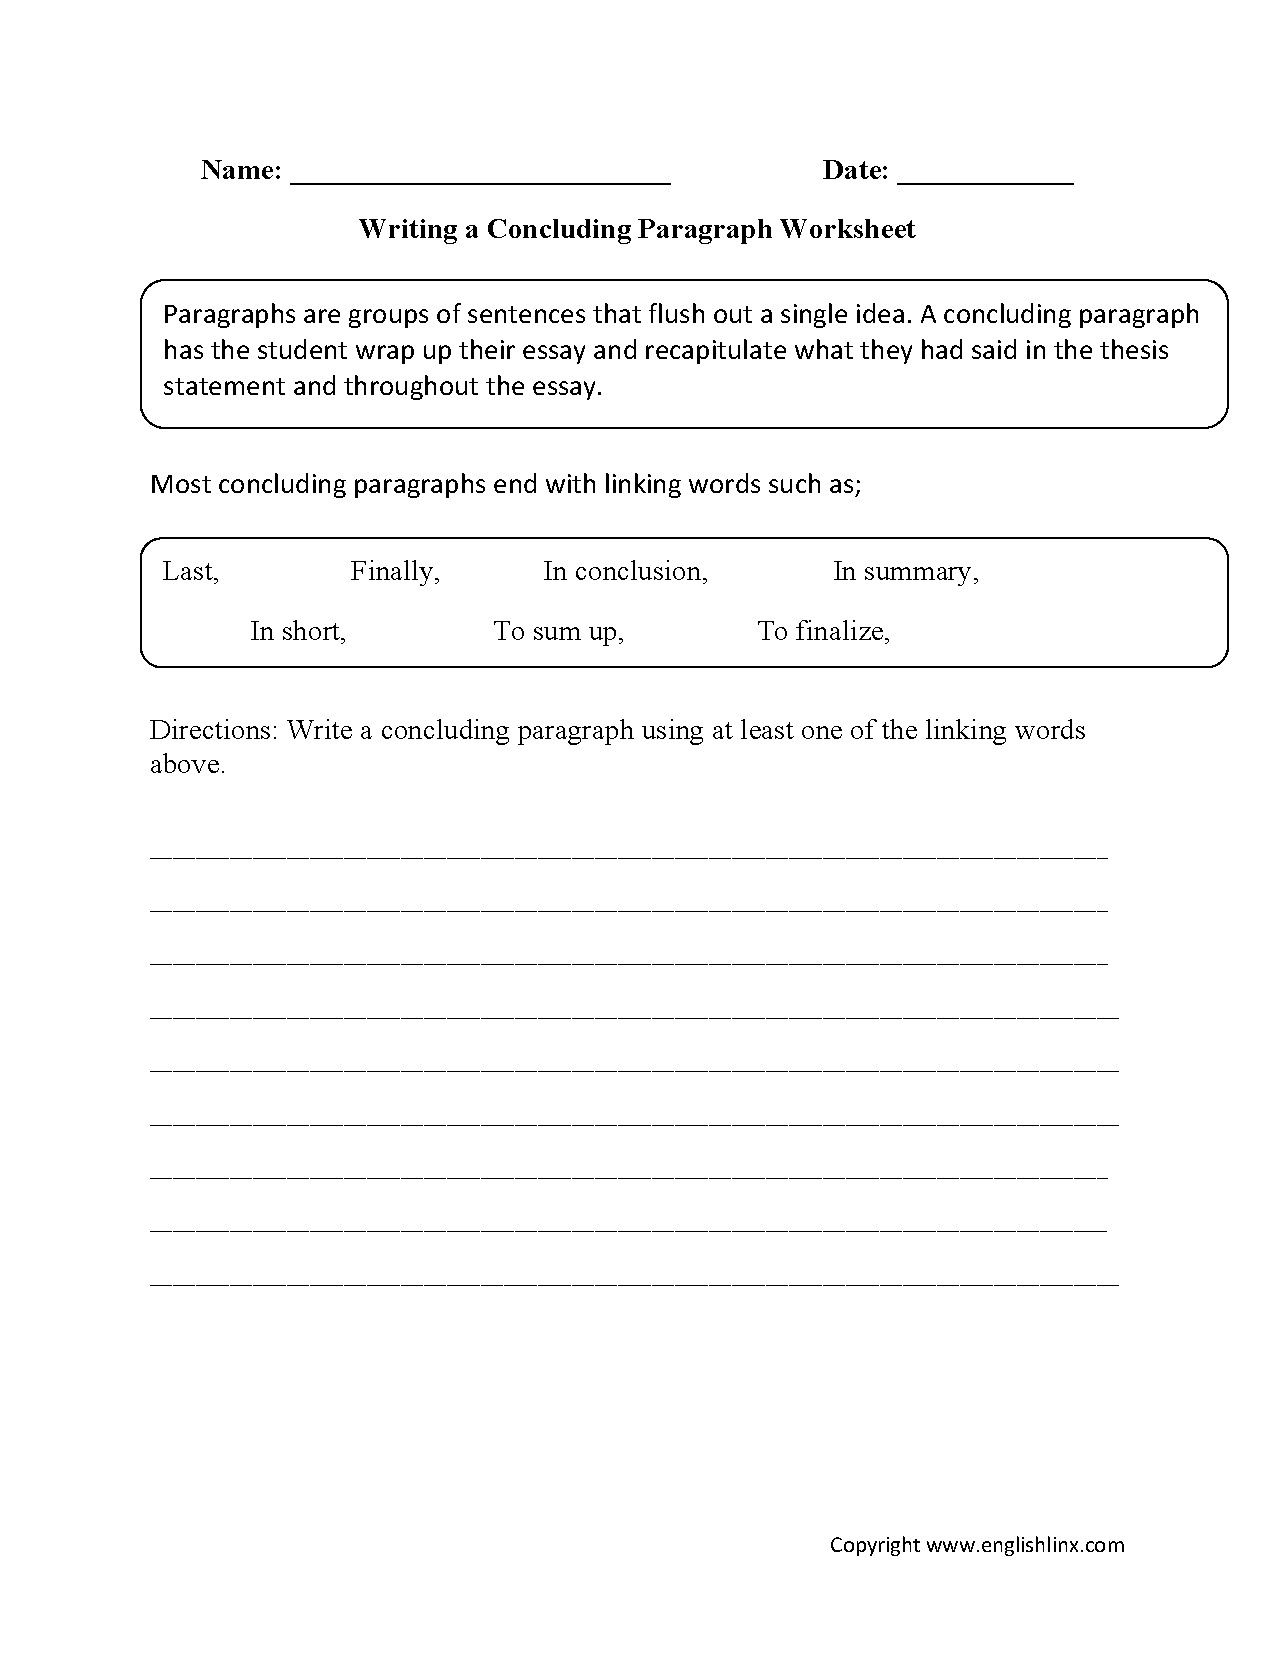 Narrative Point Of View Worksheet Printable Worksheets And Activities For Teachers Parents Tutors And Homeschool Families These activities give students practice identifying narrative perspectives and modes. indymoves org